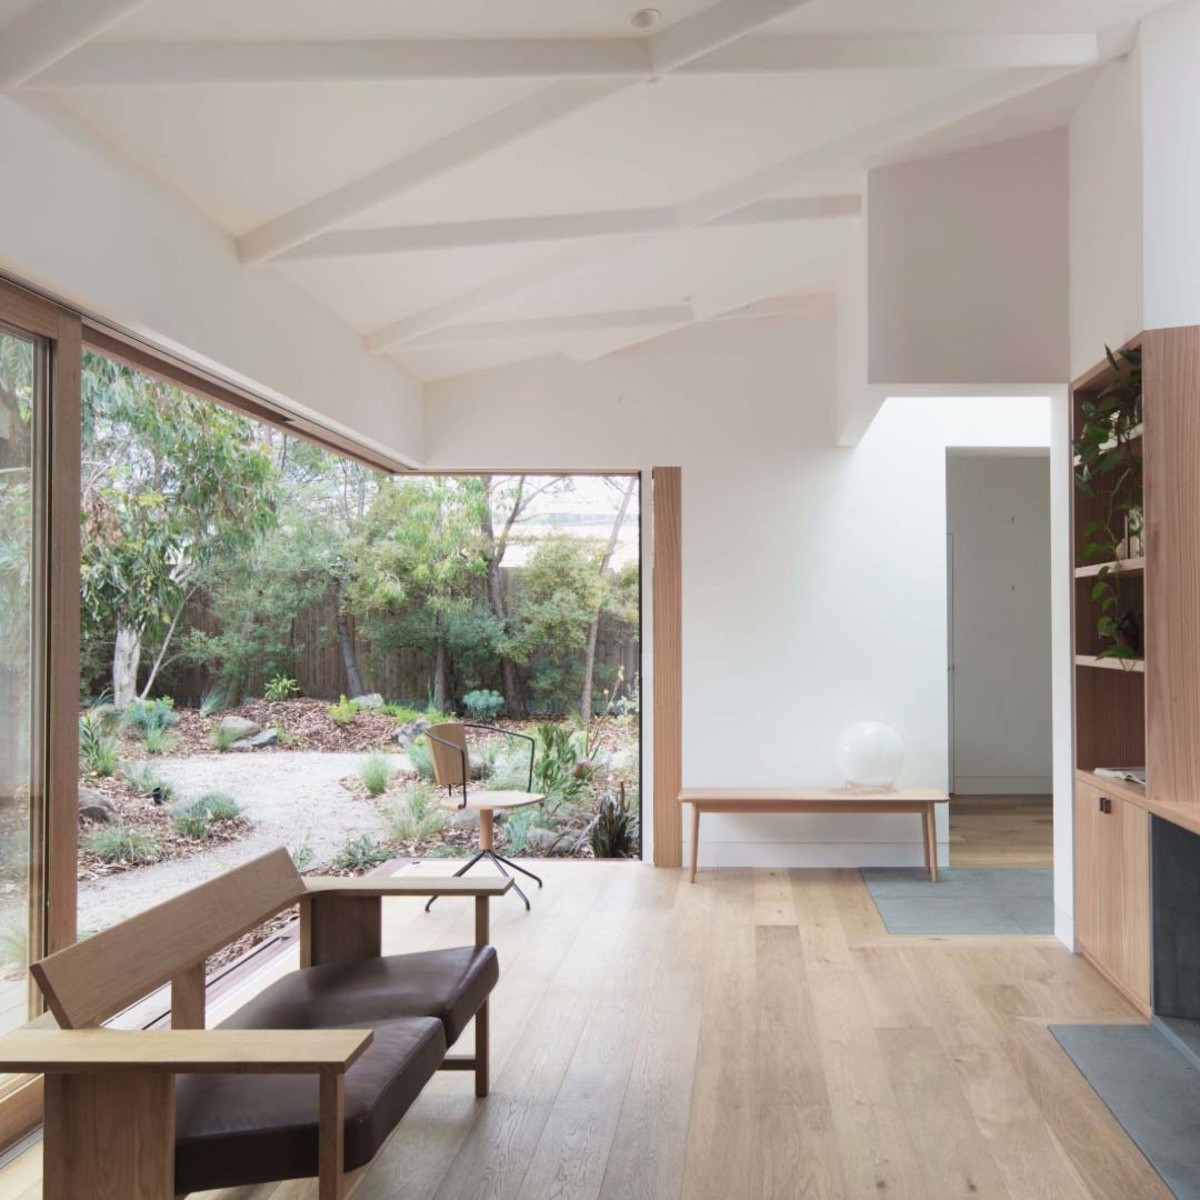 Brunswick House, Winwood McKenzie Architecture, shortlisted for Residential Alteration and Additions